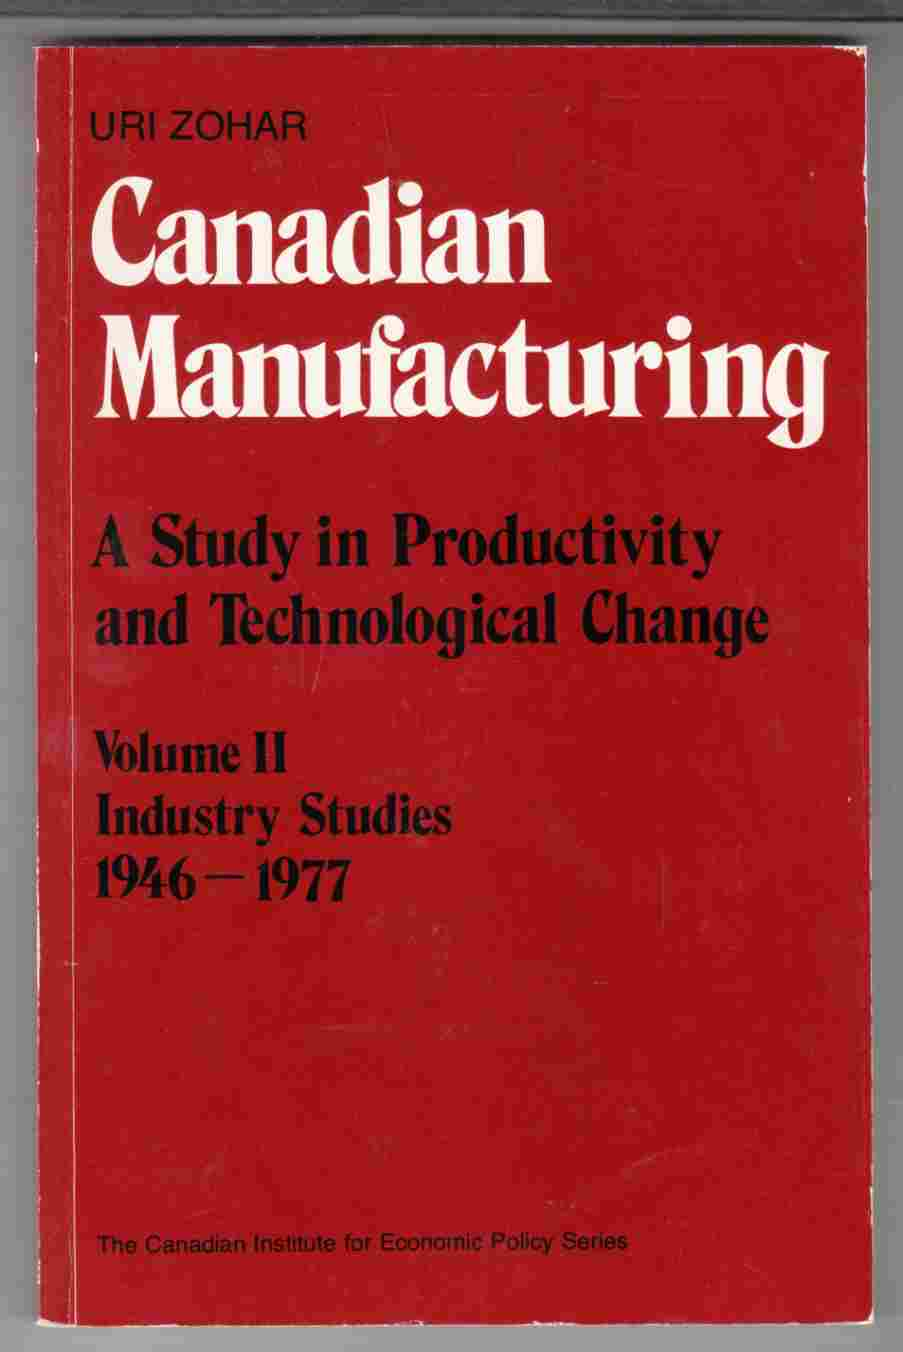 Image for Canadian Manufacturing A Study in Productivity and Technological Change: Volume II Industry Studies 1946 - 1977